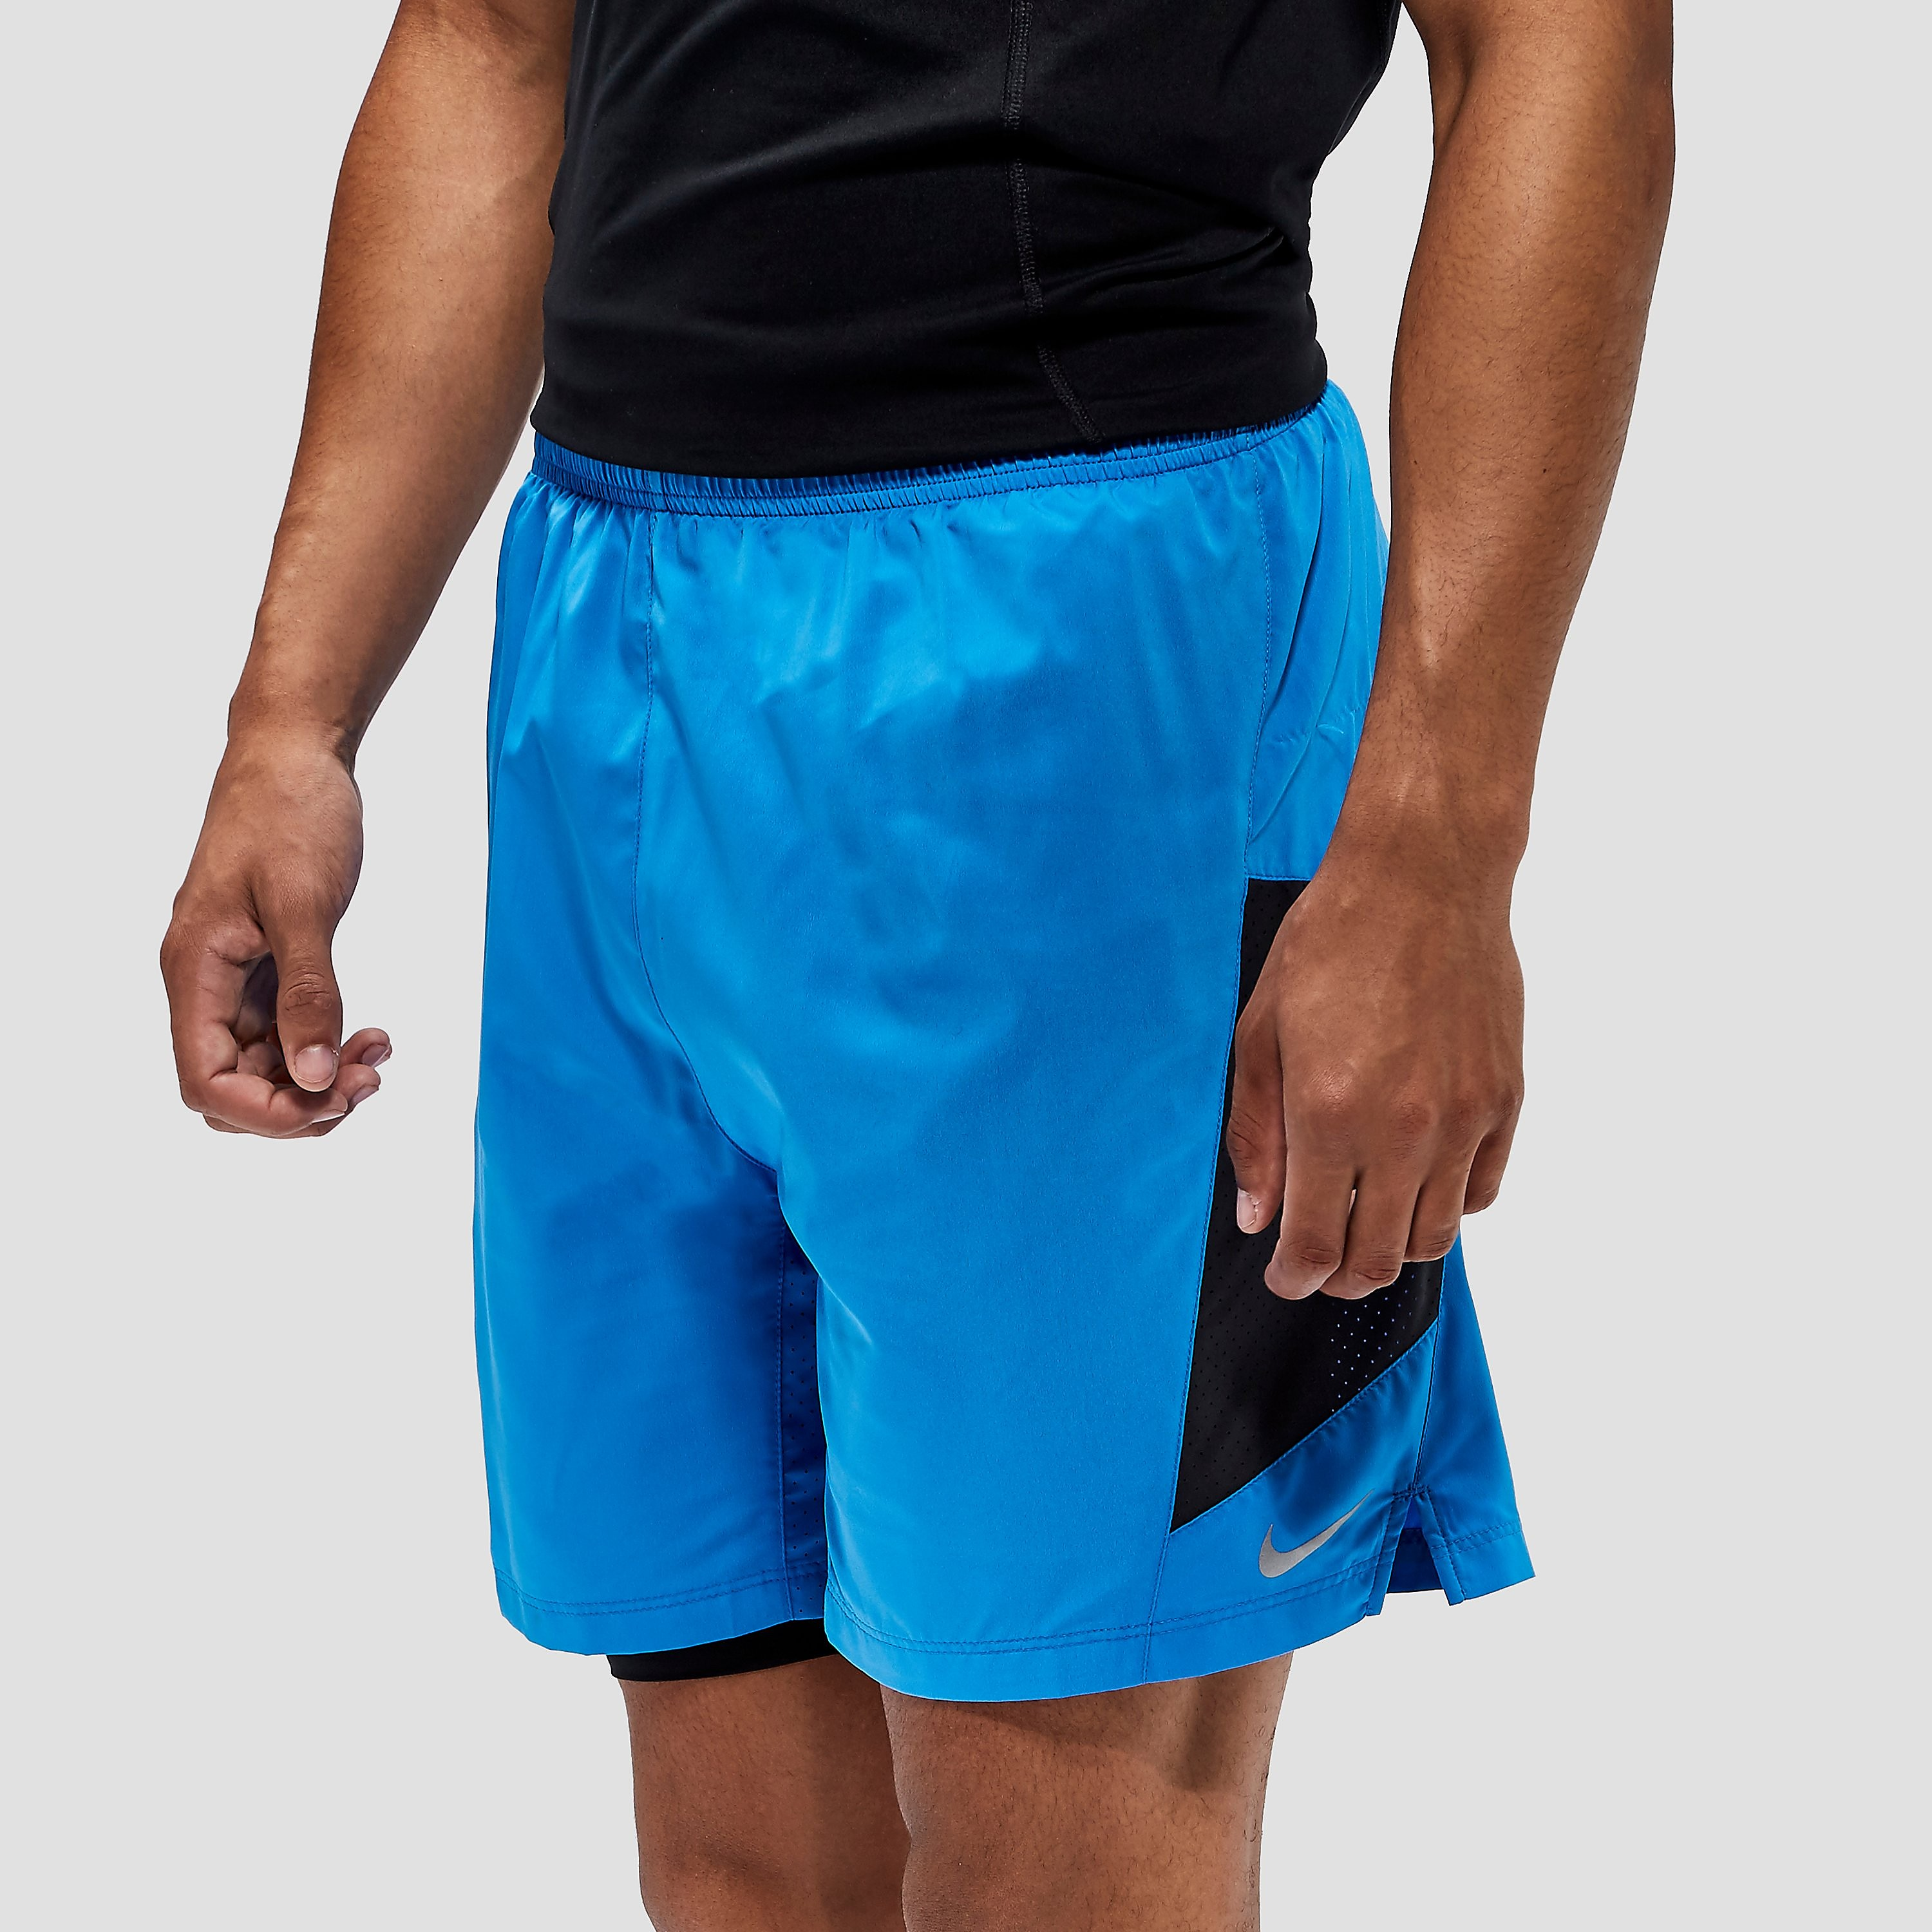 "Nike Pursuit 2-in-1 7"" Men's Running Shorts"